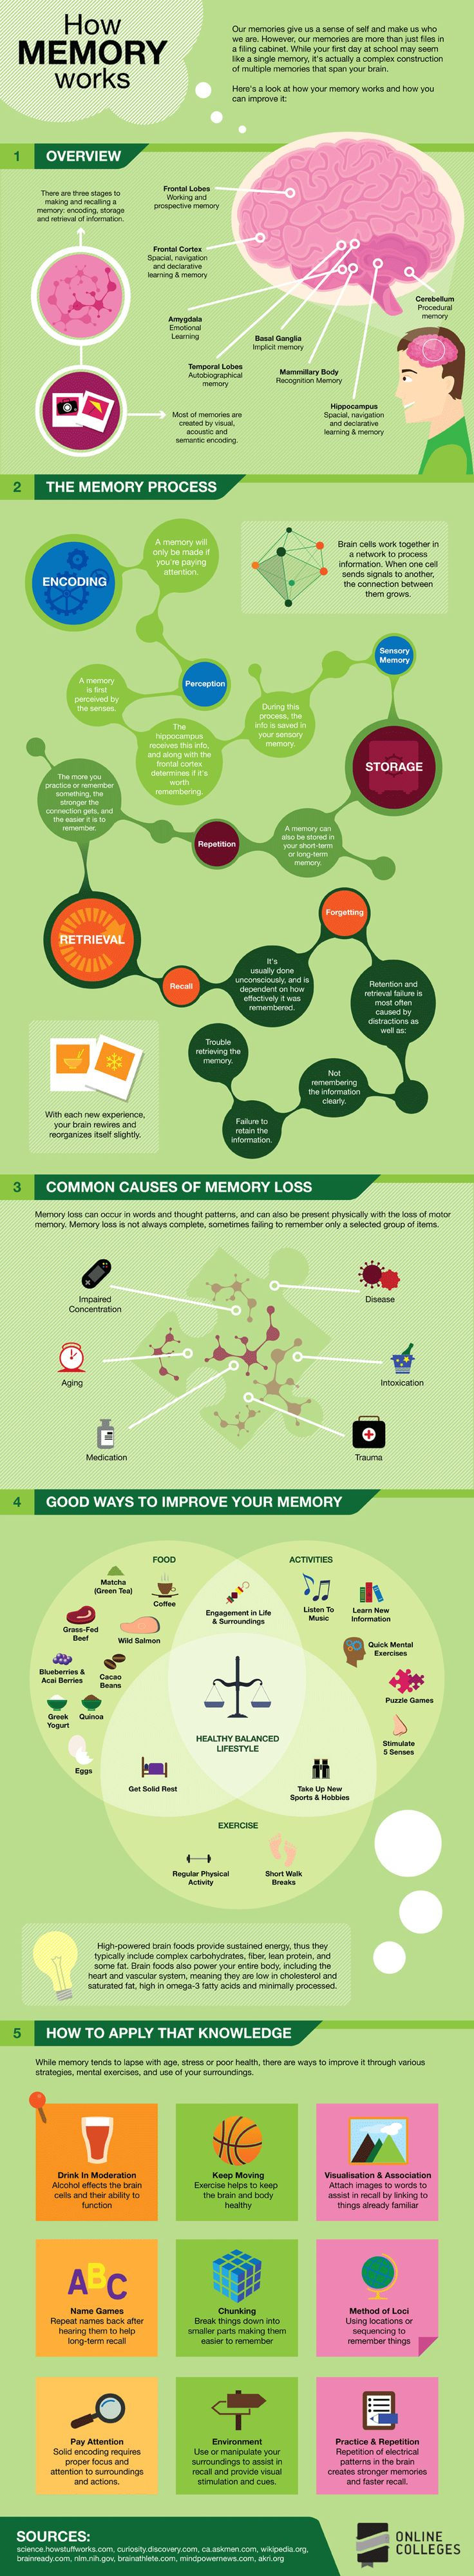 The folks at OnlineColleges have put together this helpful infographic that simplifies and maps out how memory works, along with some tips on how to improve yours.